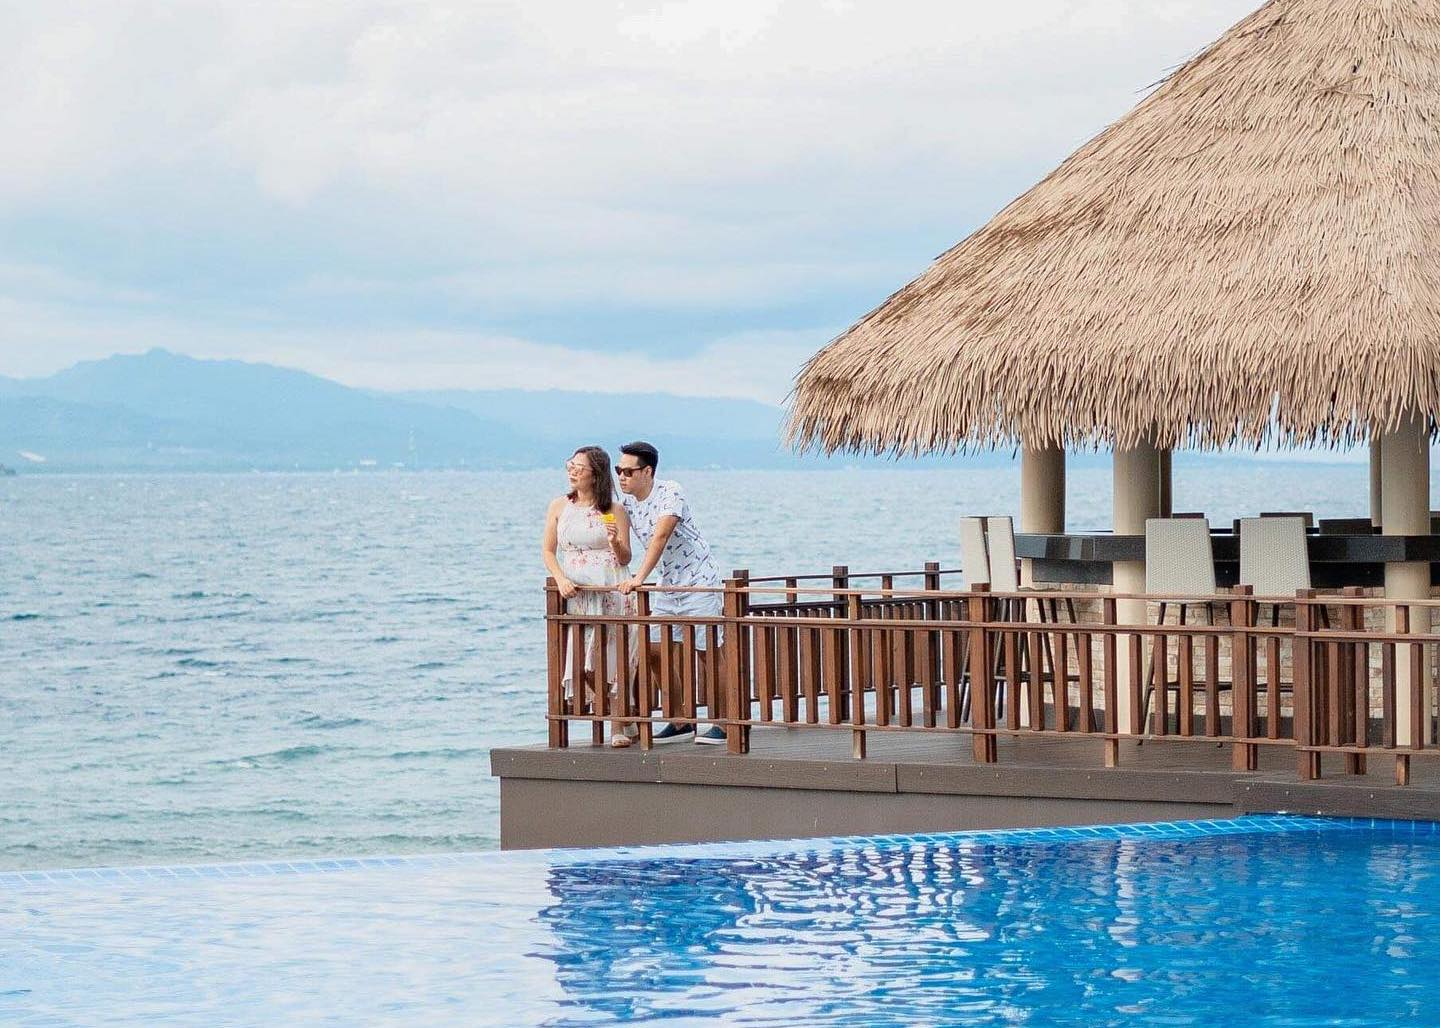 A couple watching the beautiful view from Dusit Mactan Resort